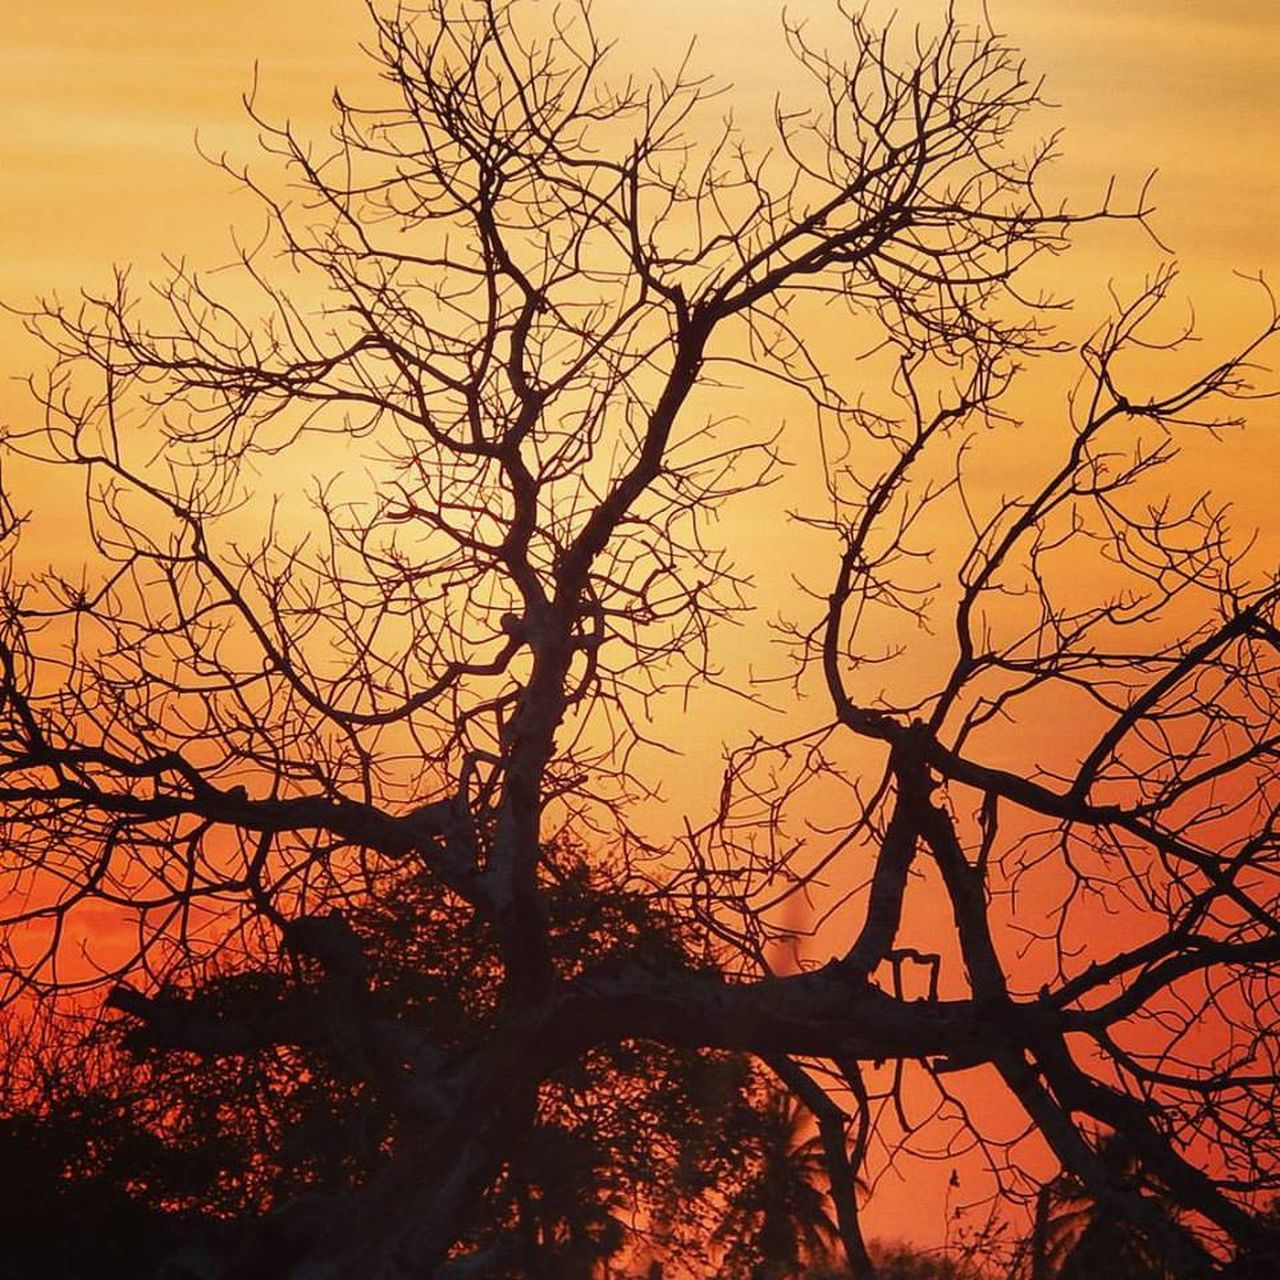 tree, bare tree, sunset, nature, branch, beauty in nature, silhouette, tranquility, no people, outdoors, sky, scenics, tranquil scene, low angle view, tree trunk, landscape, day, dead tree